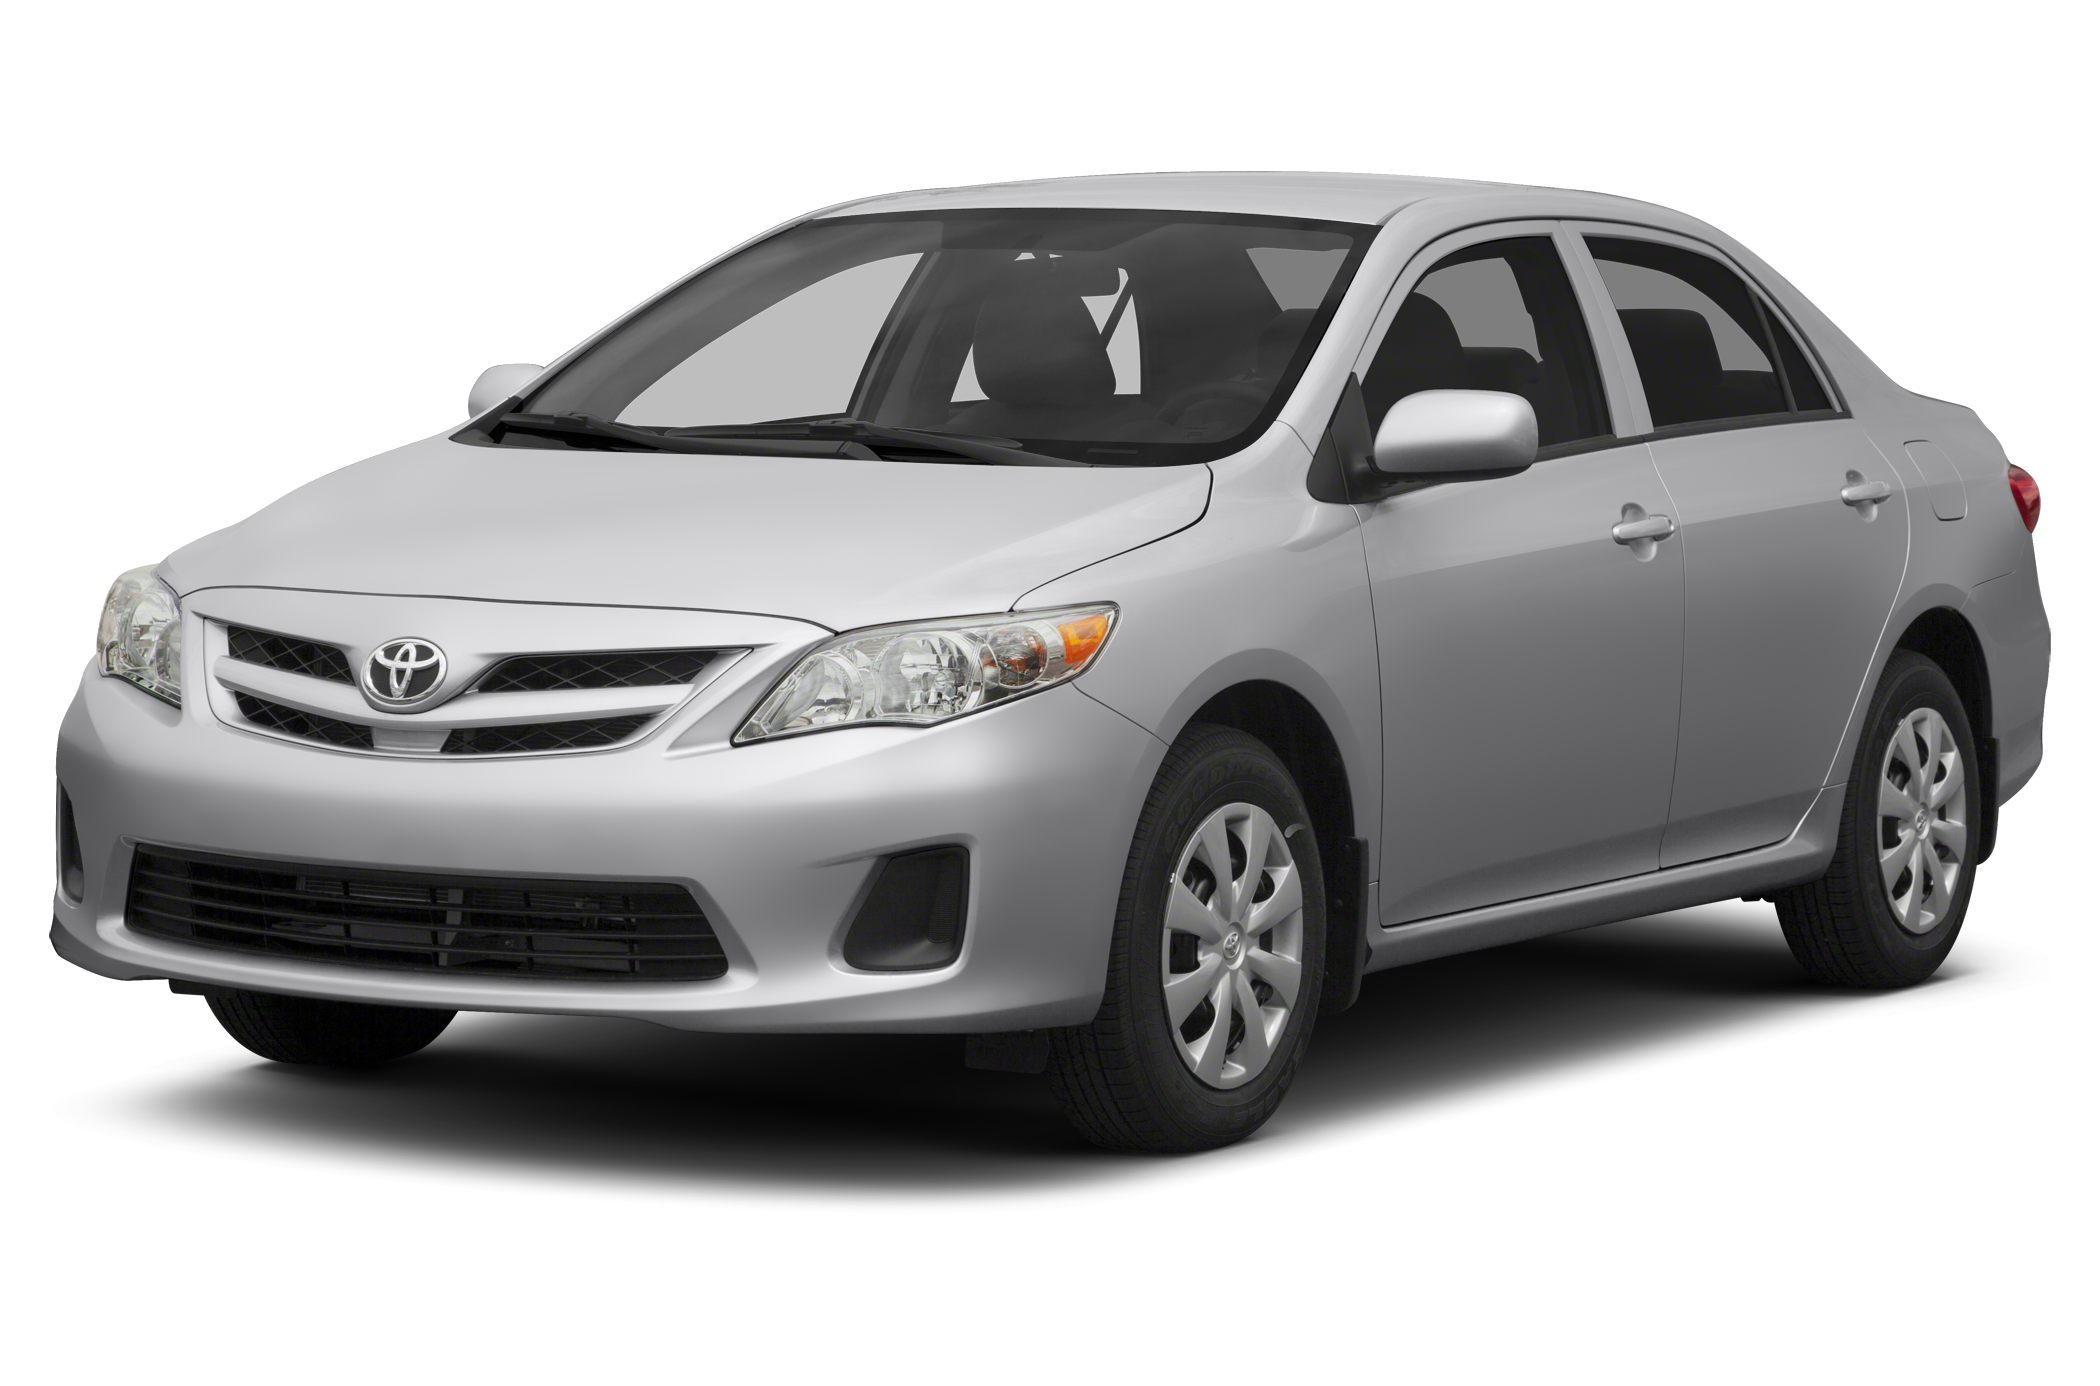 2013 Toyota Corolla LE Sedan for sale in Beaufort for $15,875 with 44,680 miles.